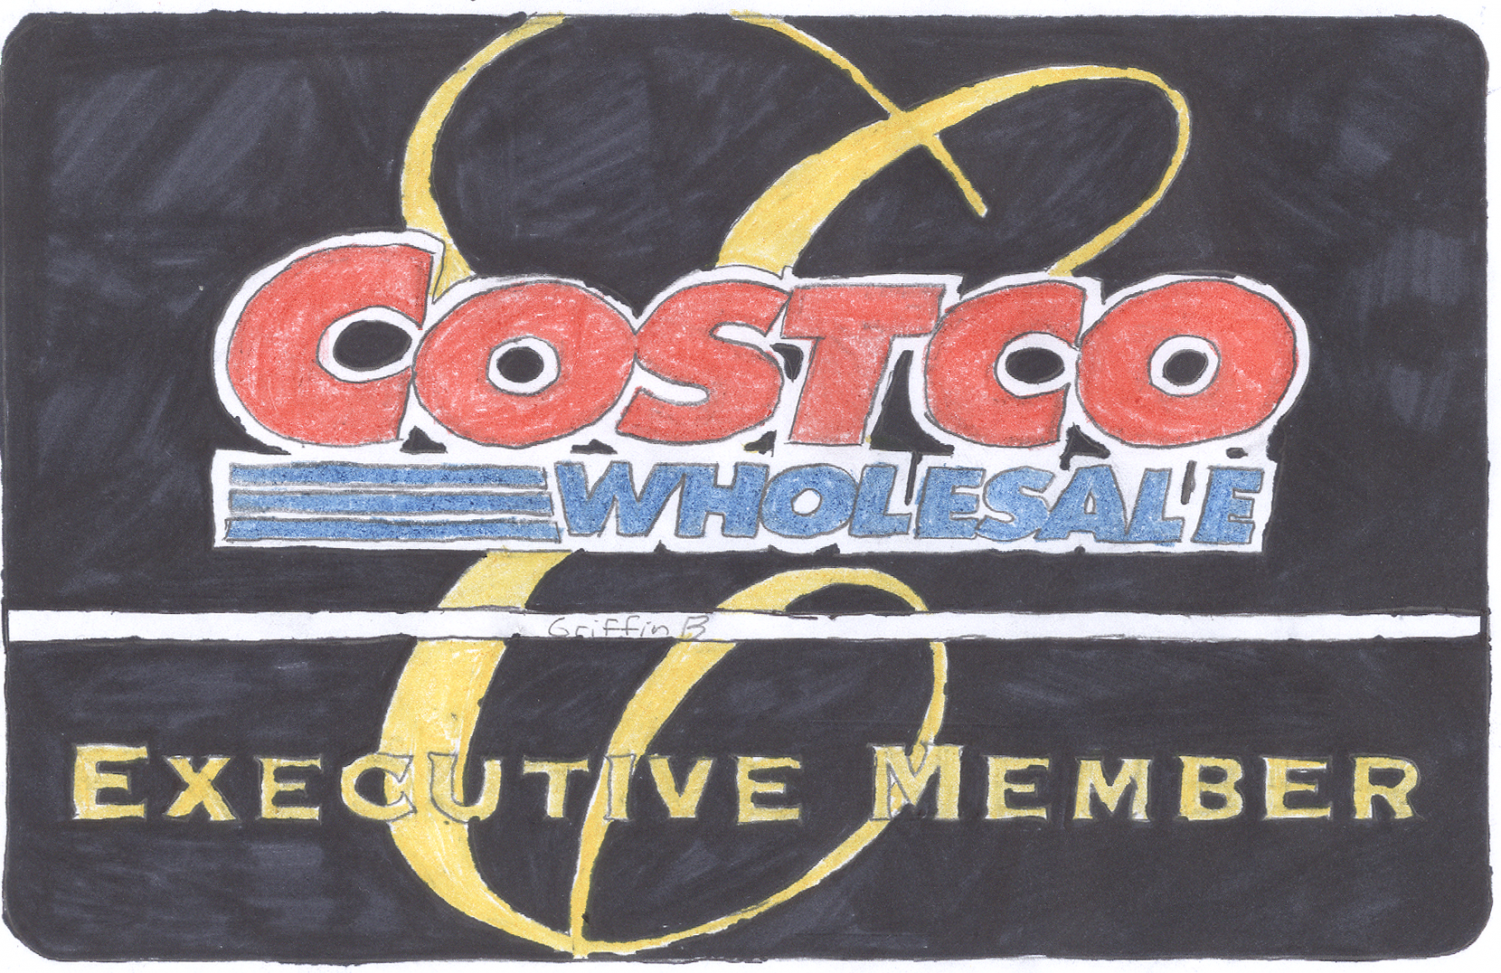 COSTCO CLOSES ITS COURTS TO OUTSIDERS